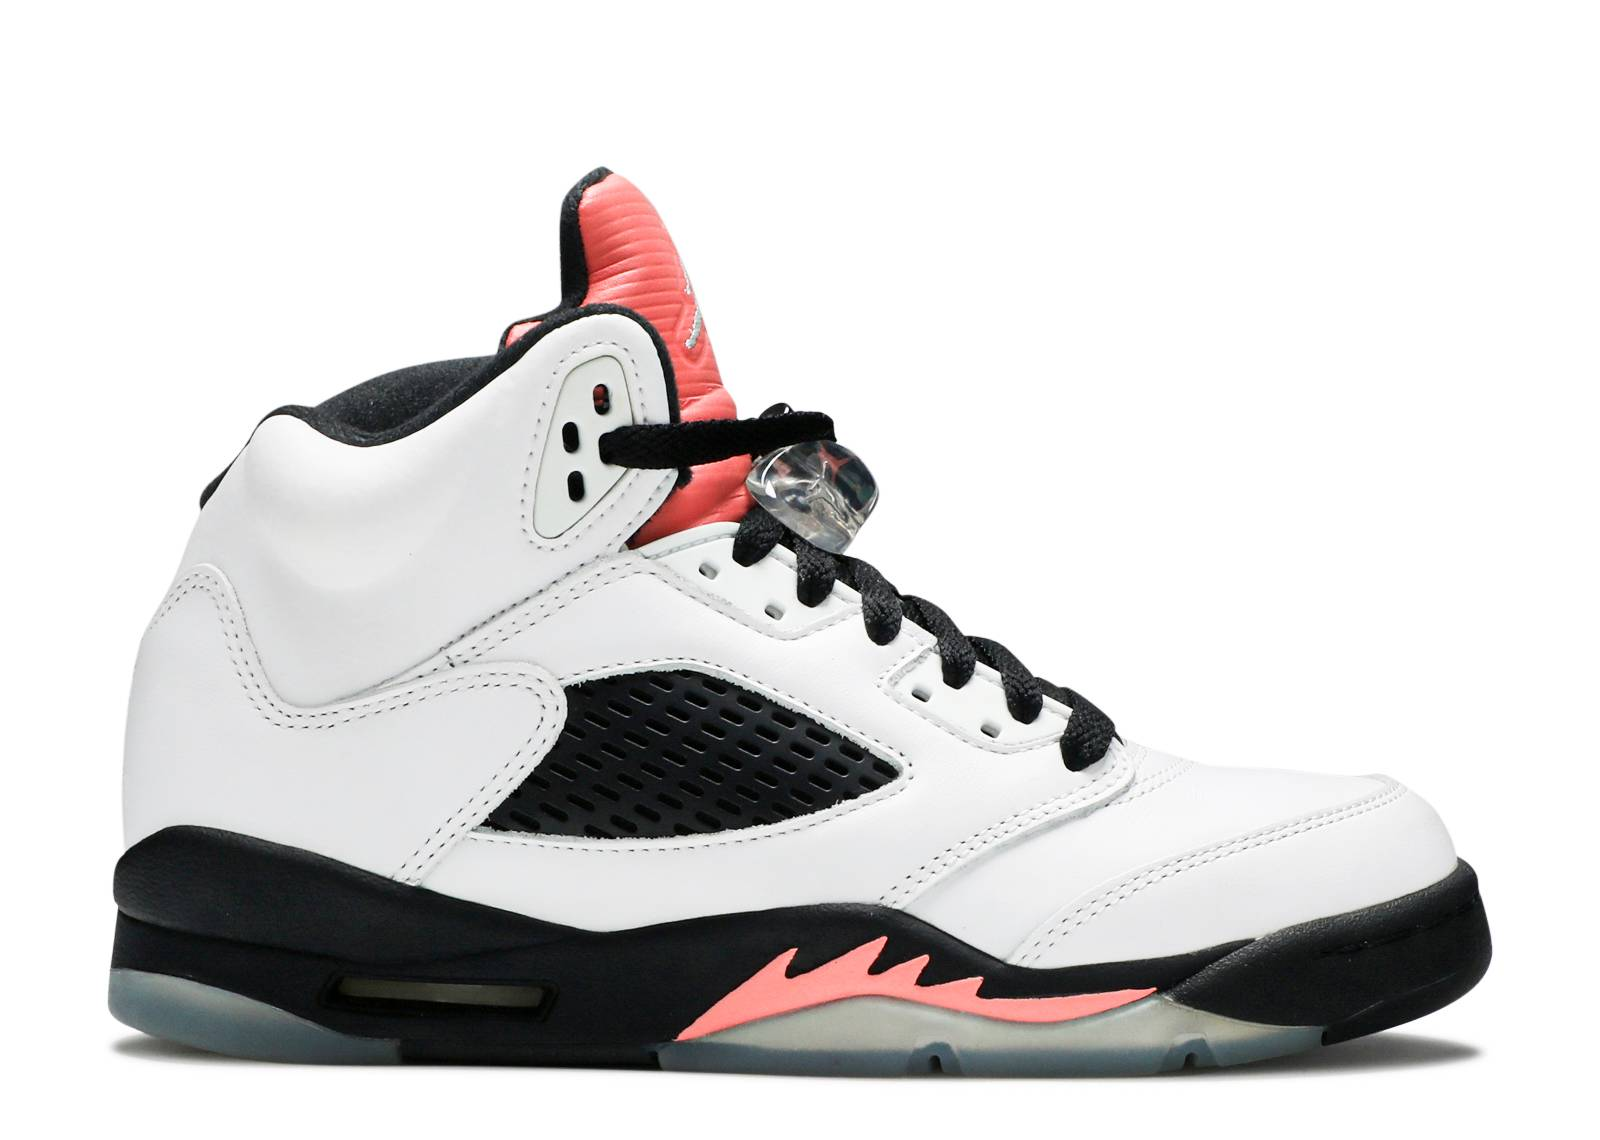 buy popular 1e142 f936f Air Jordan Shoes for Girls - New & Popular | Flight Club